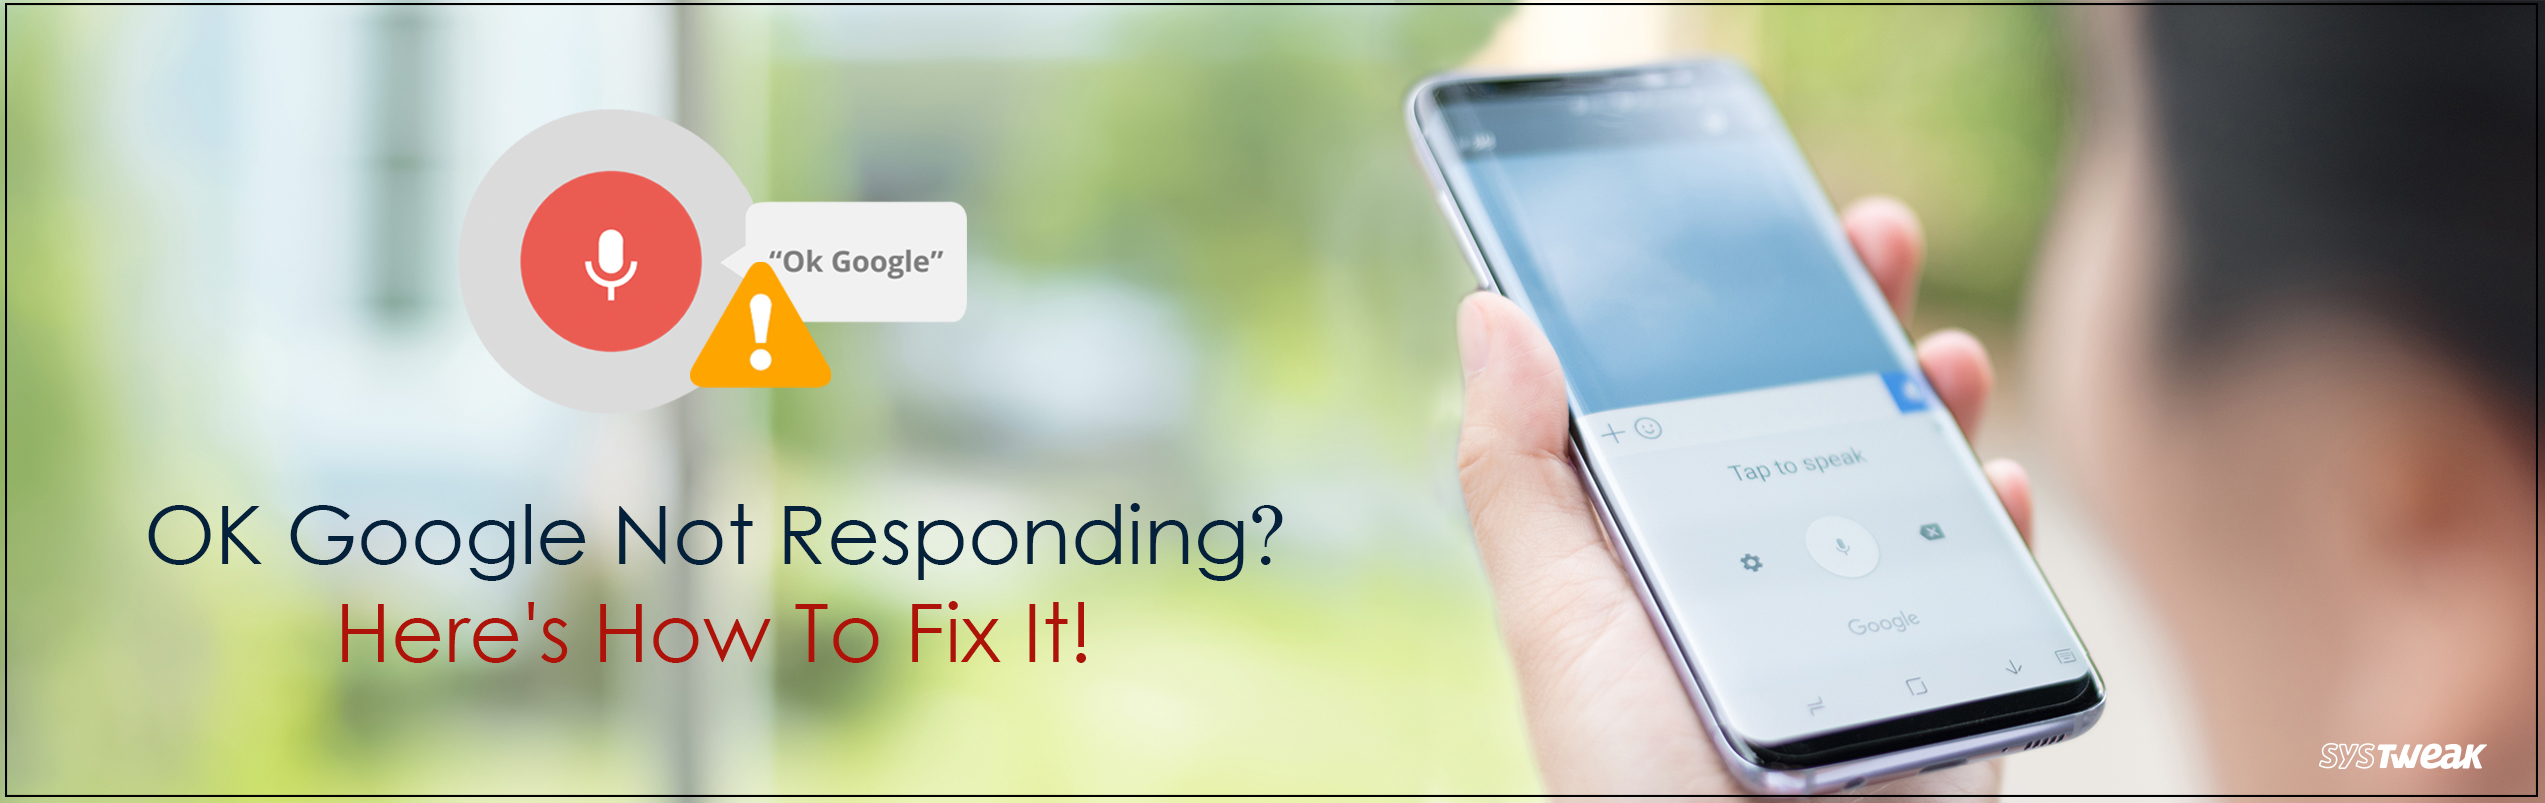 How to Fix OK Google Not Working Issue?